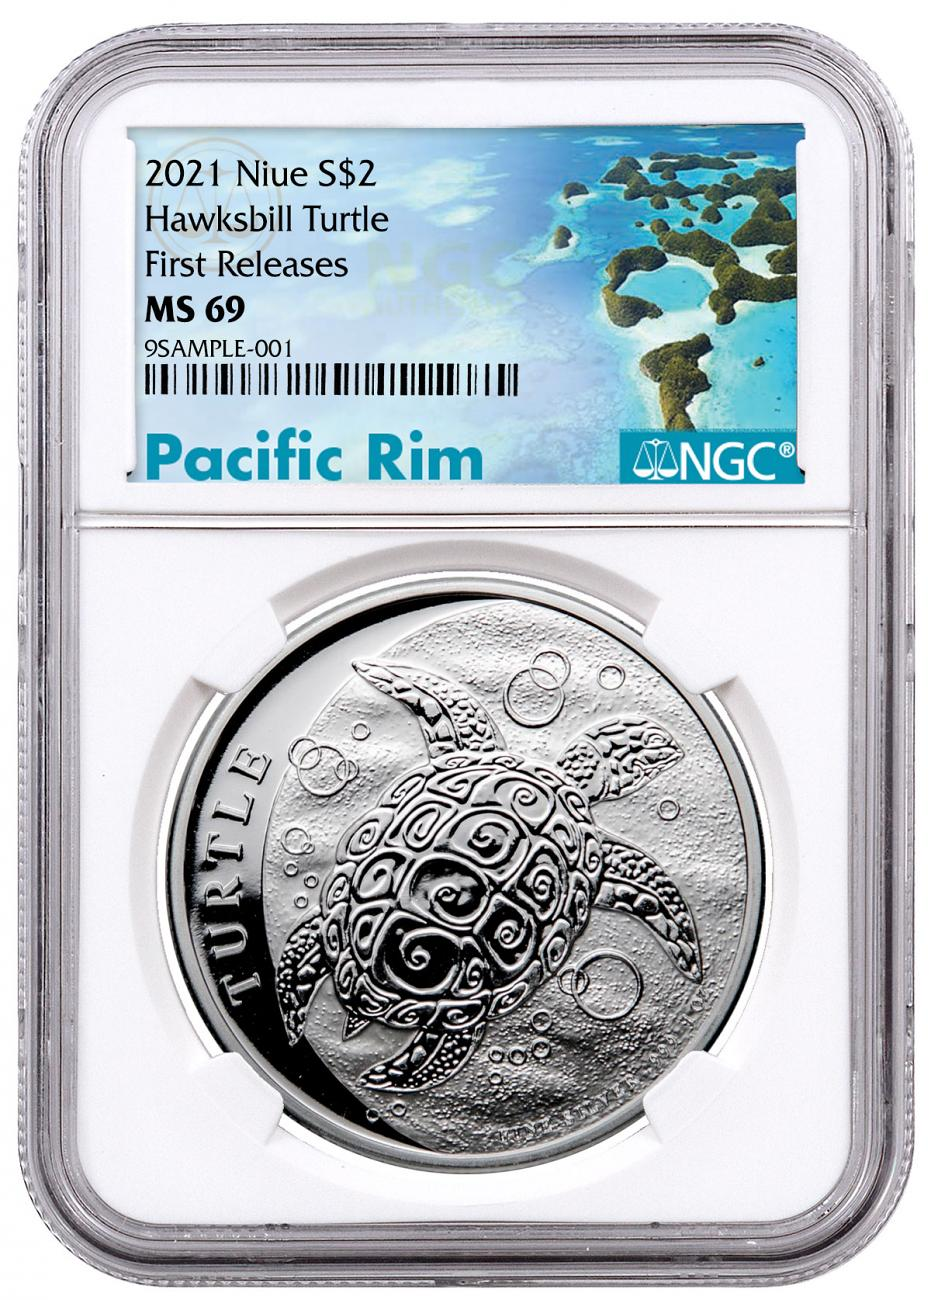 2021 Niue 1 oz Silver Hawksbill Turtle $2 Coin NGC MS69 FR Exclusive Pacific Rim Label